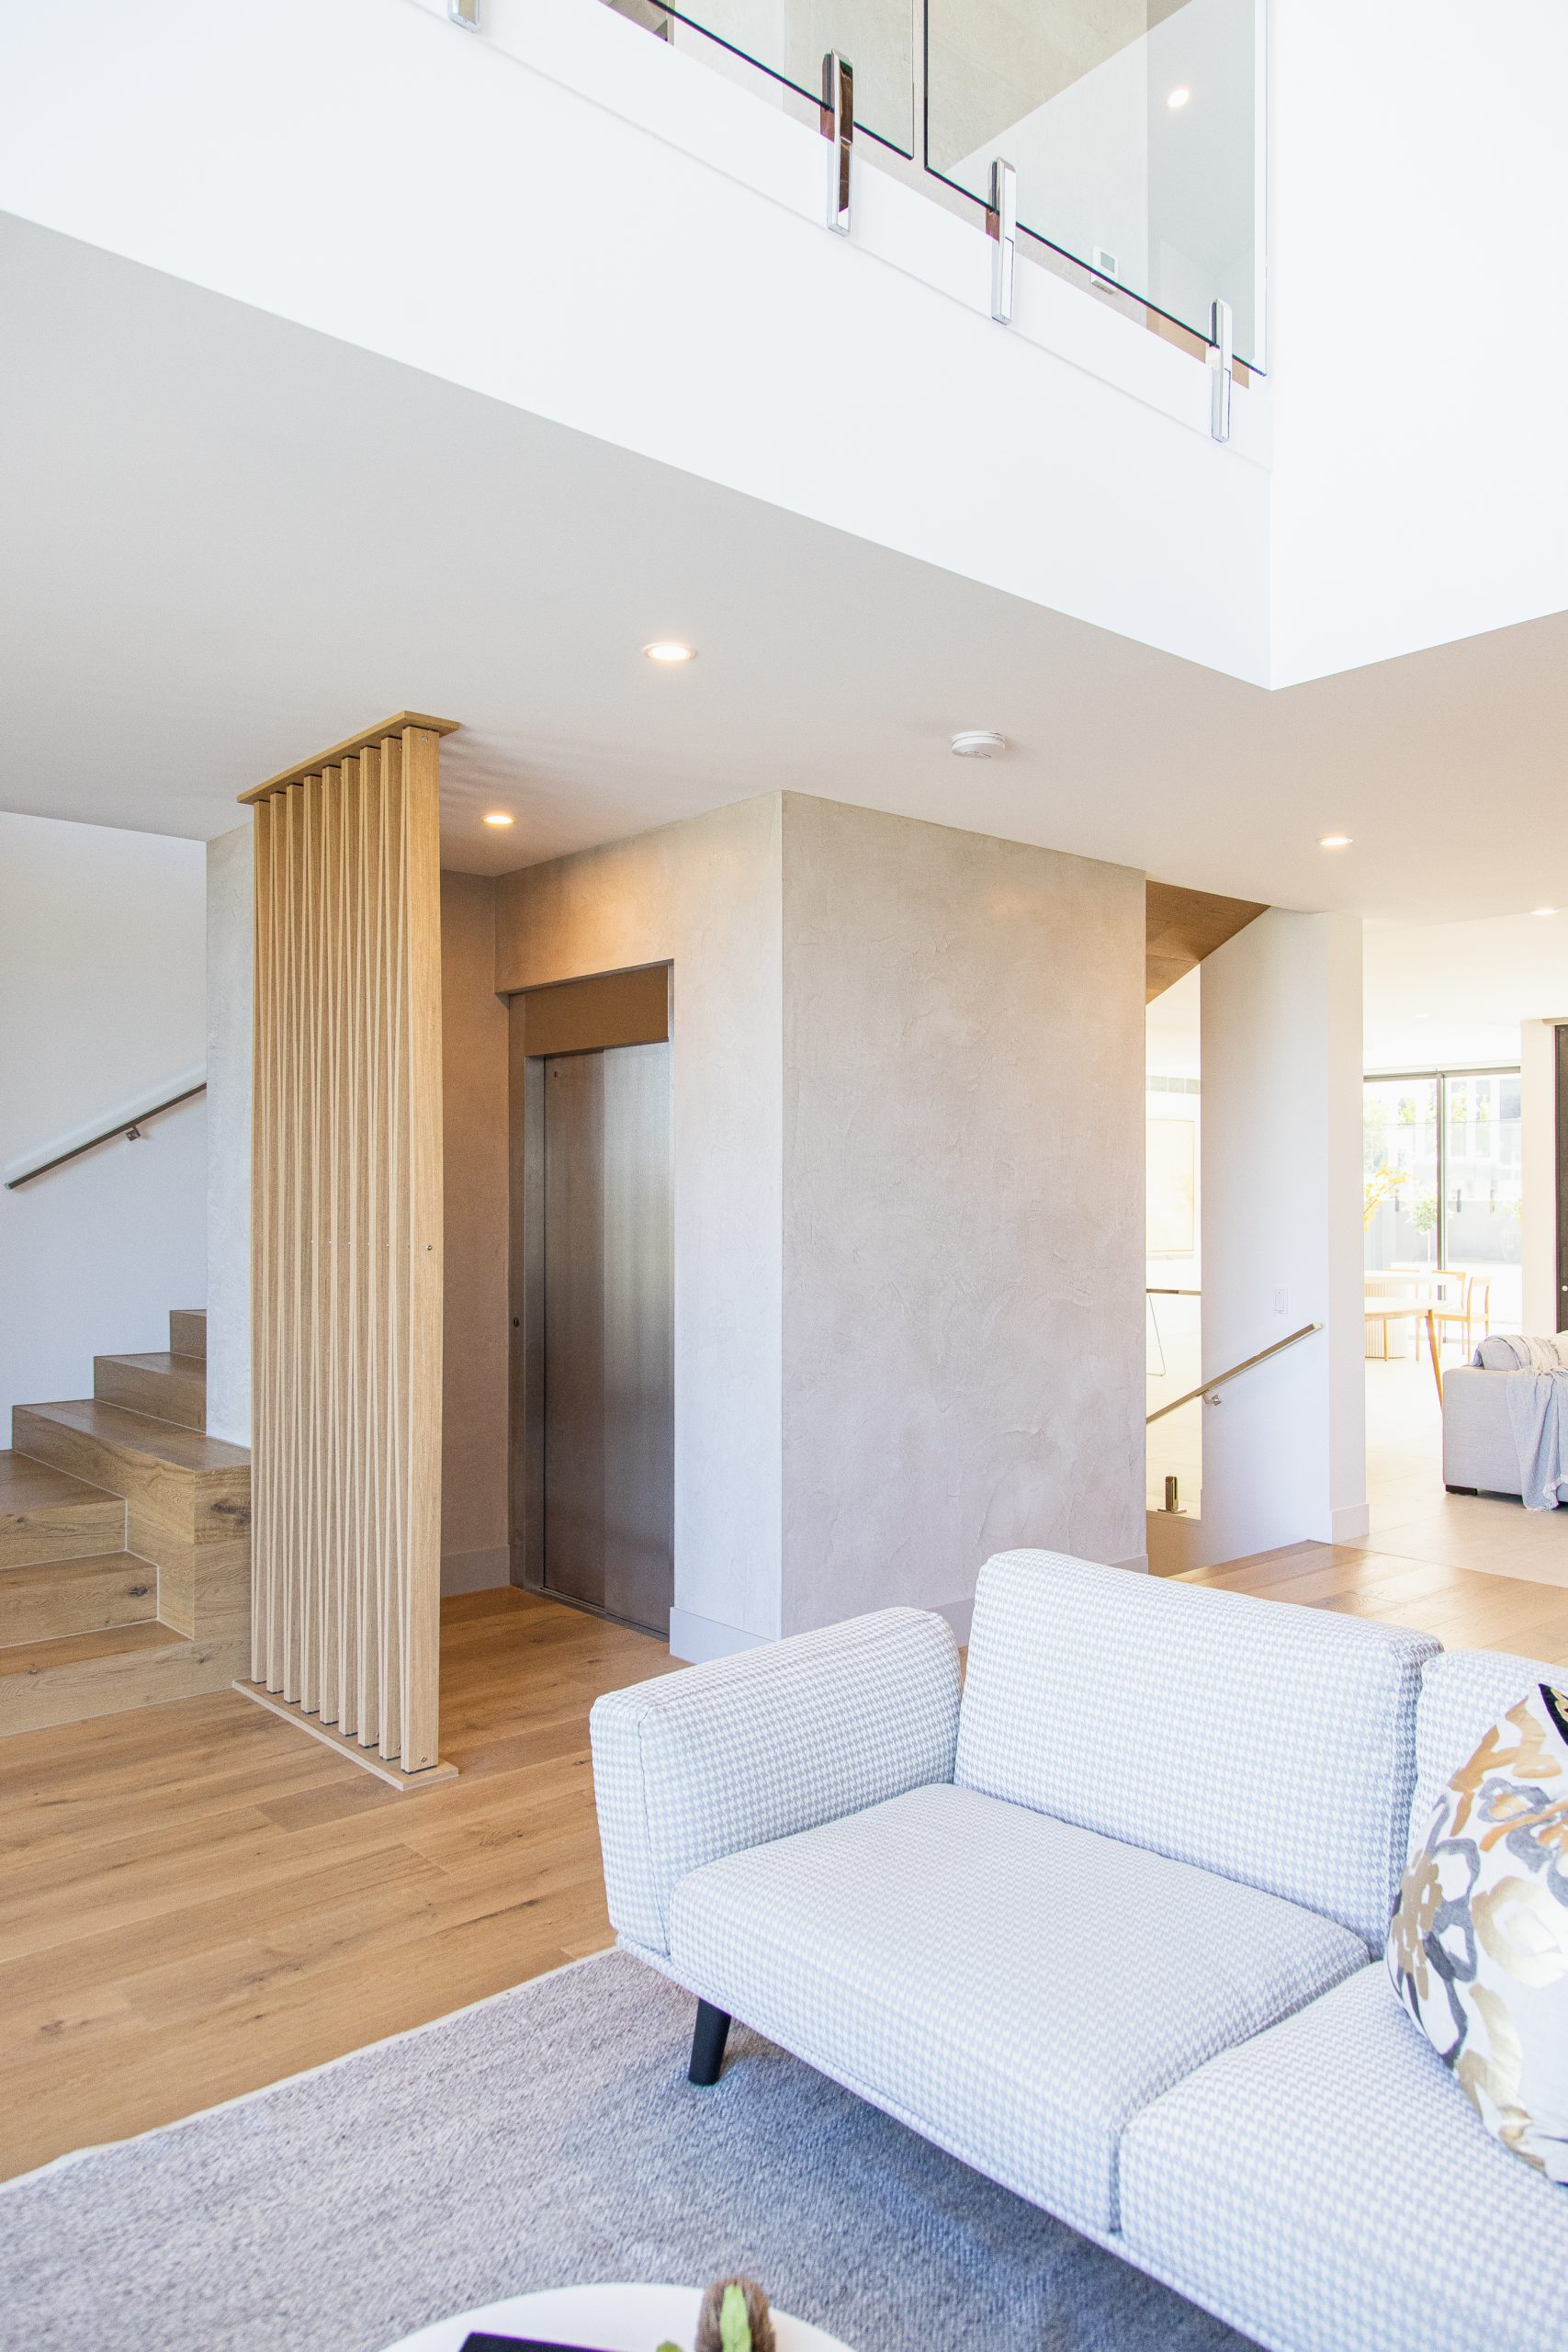 a modern living area with stylish elevator shaft next to the staircase. The elevator door is silver metal and the shaft is white. there is a wood structure in front of the elevator.